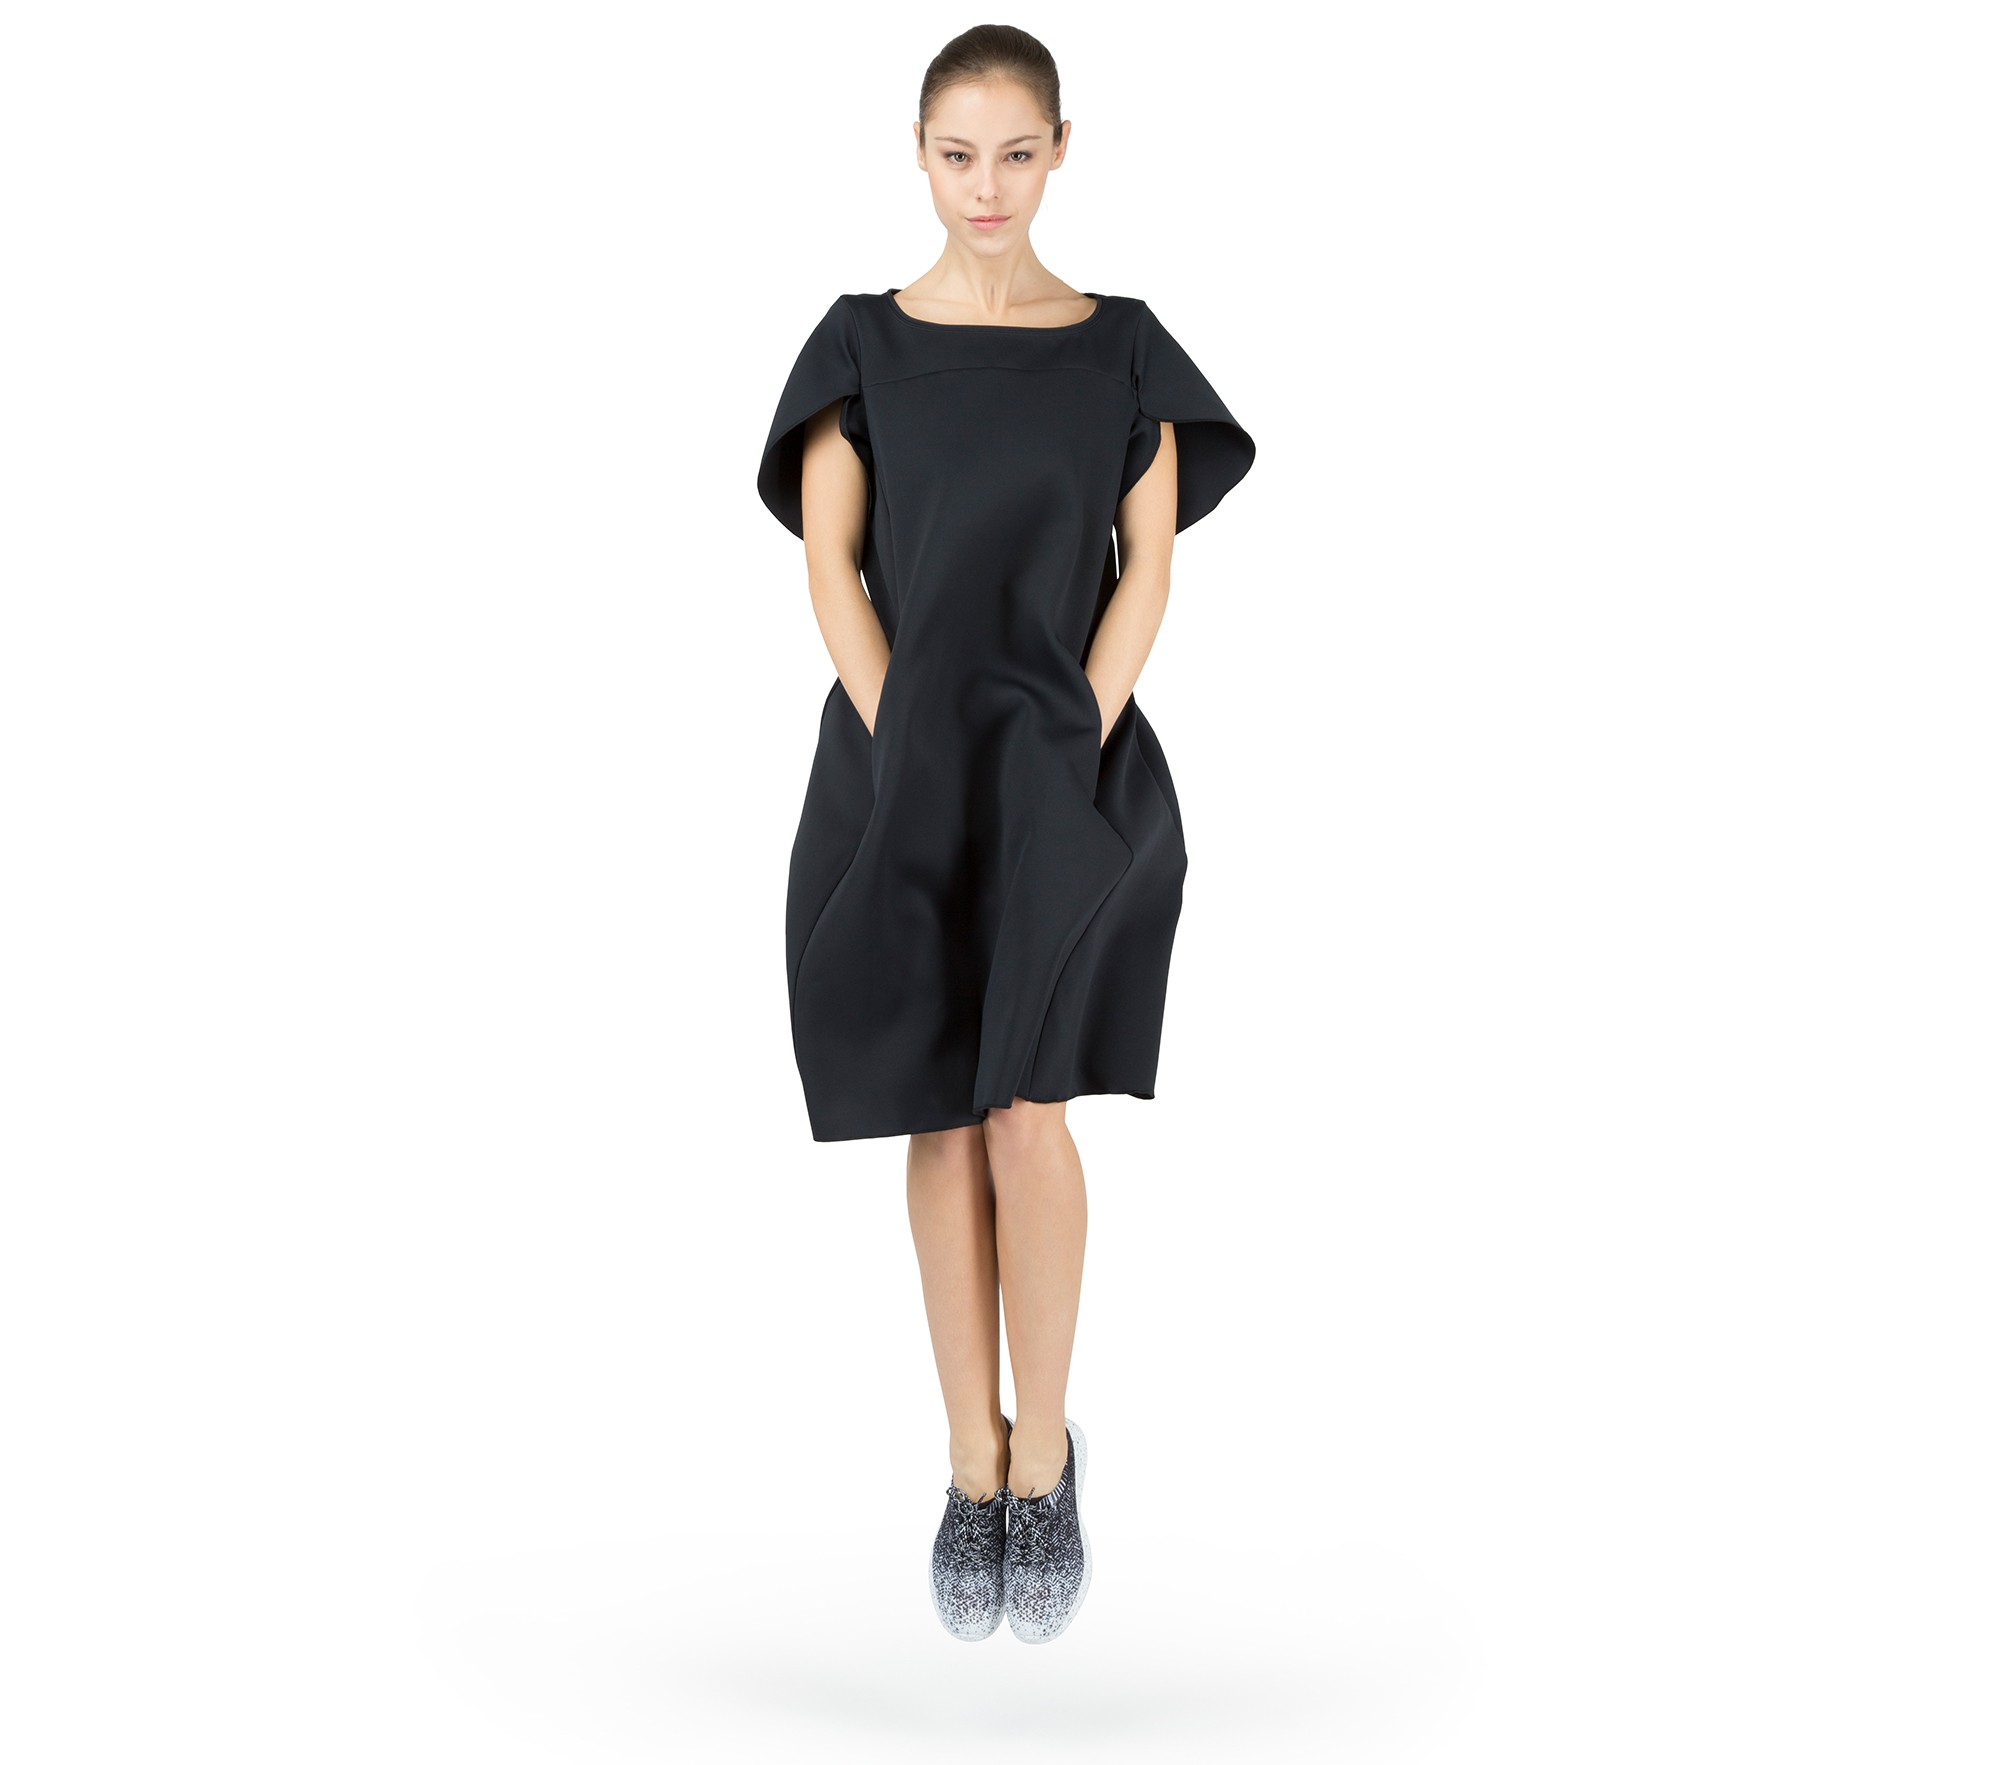 Neopren effect dress